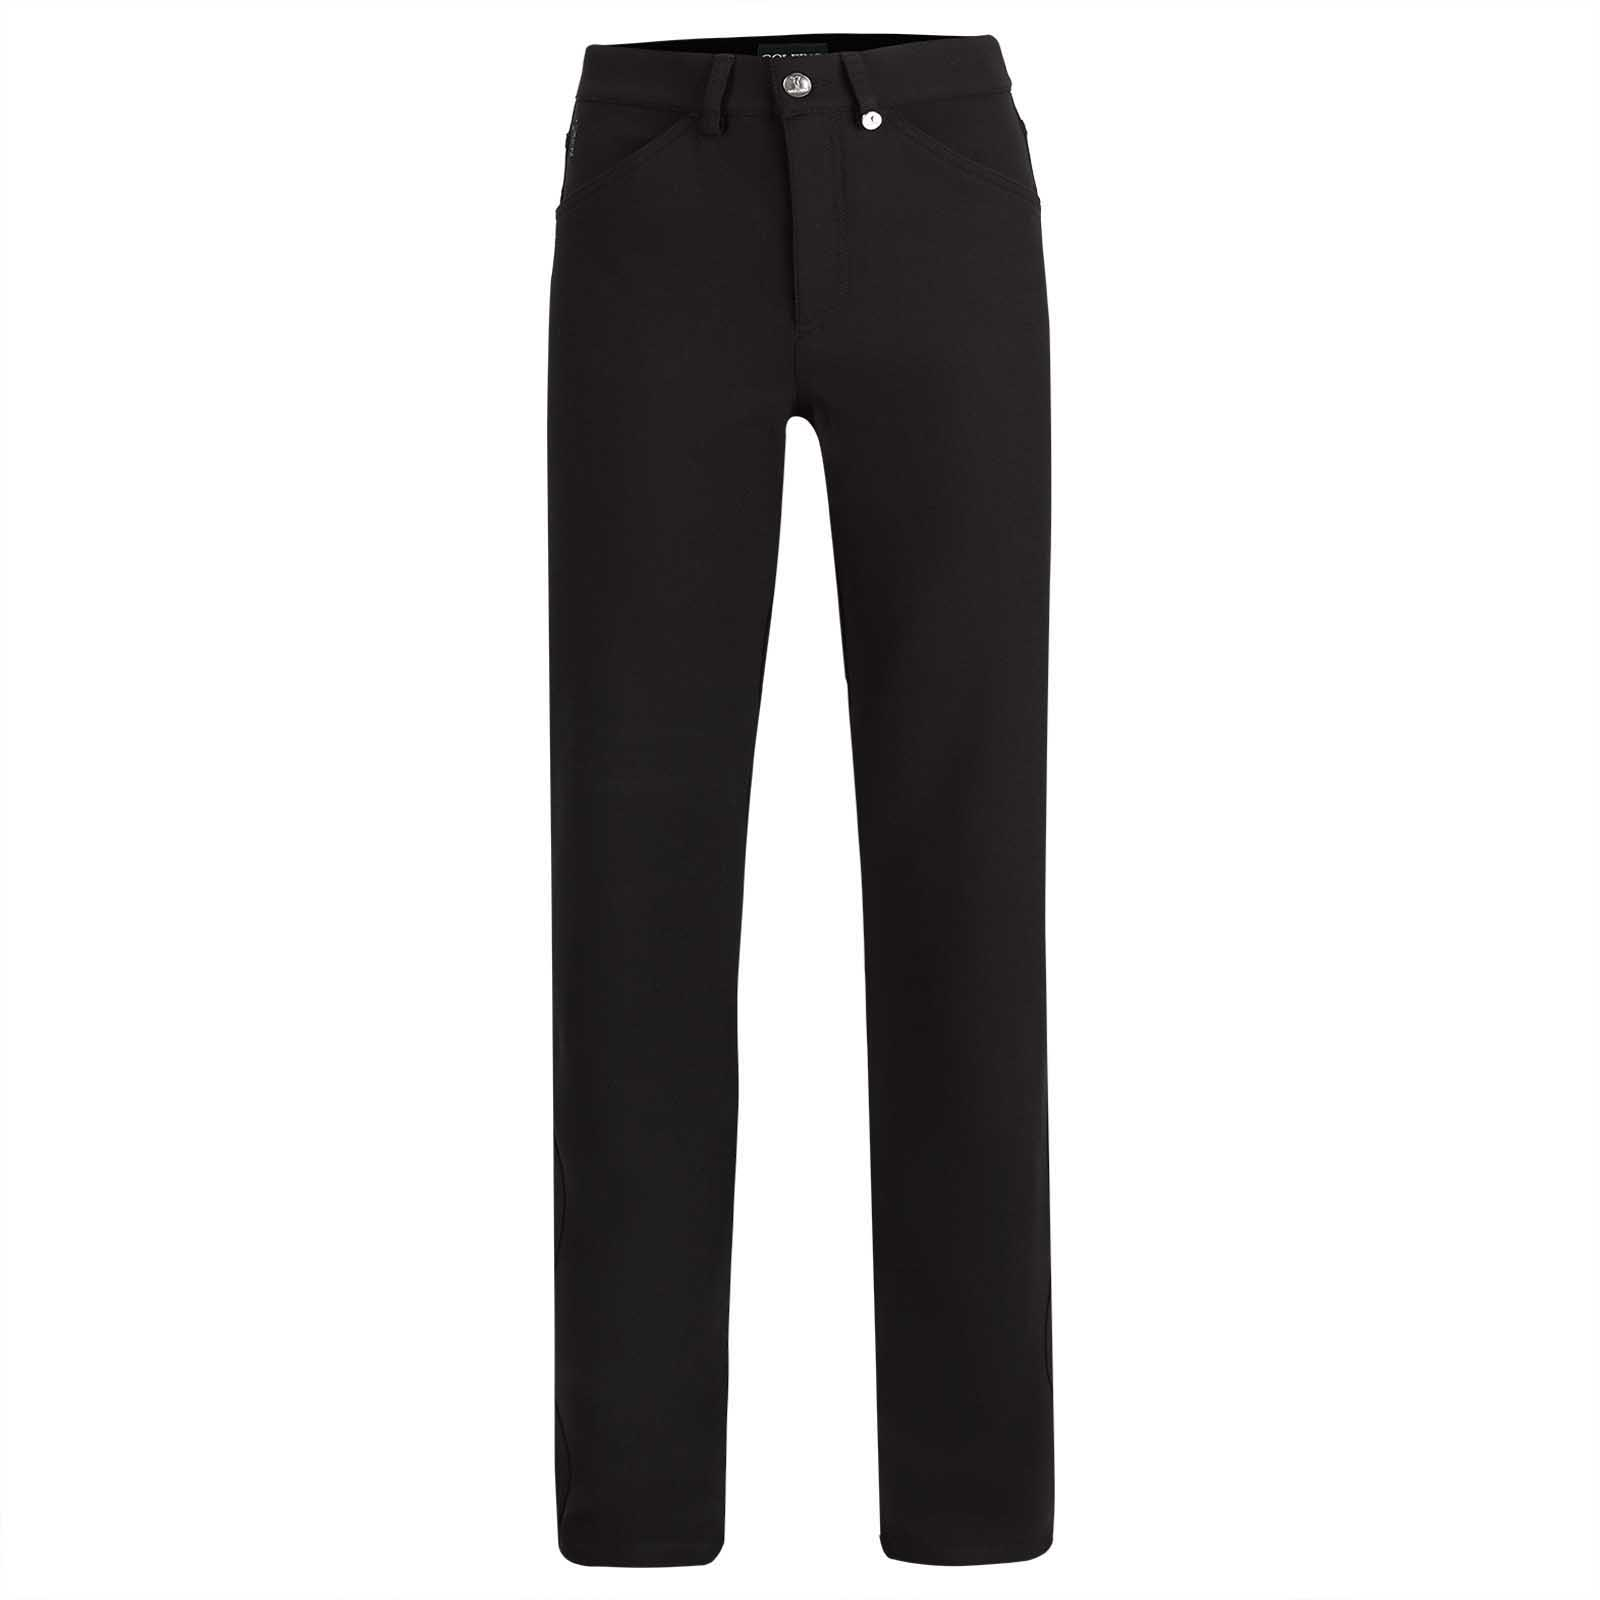 Ladies' classic techno tweed 4-way stretch golf trousers